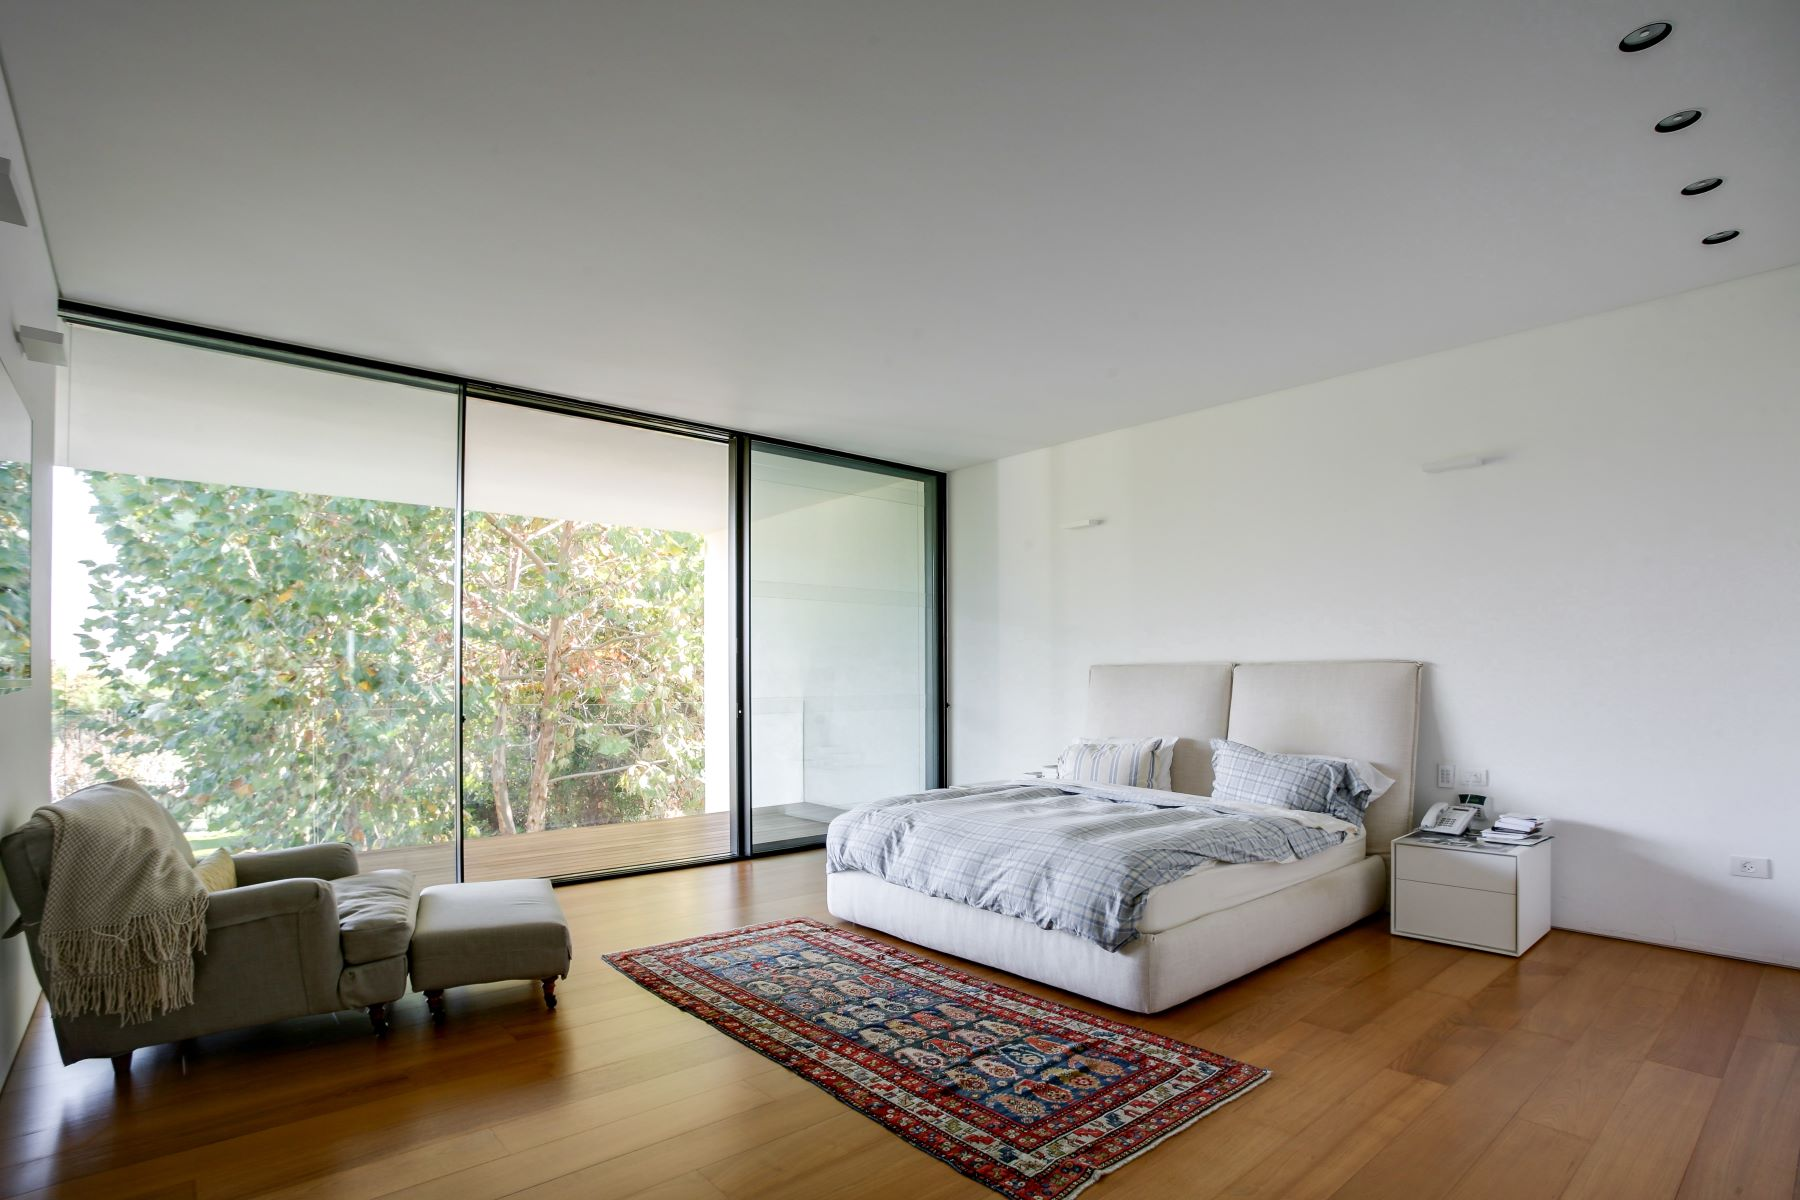 Additional photo for property listing at Exquisite Modern House Designed by Pitsou Kedem Kfar Shmaryahu, Israel Israël